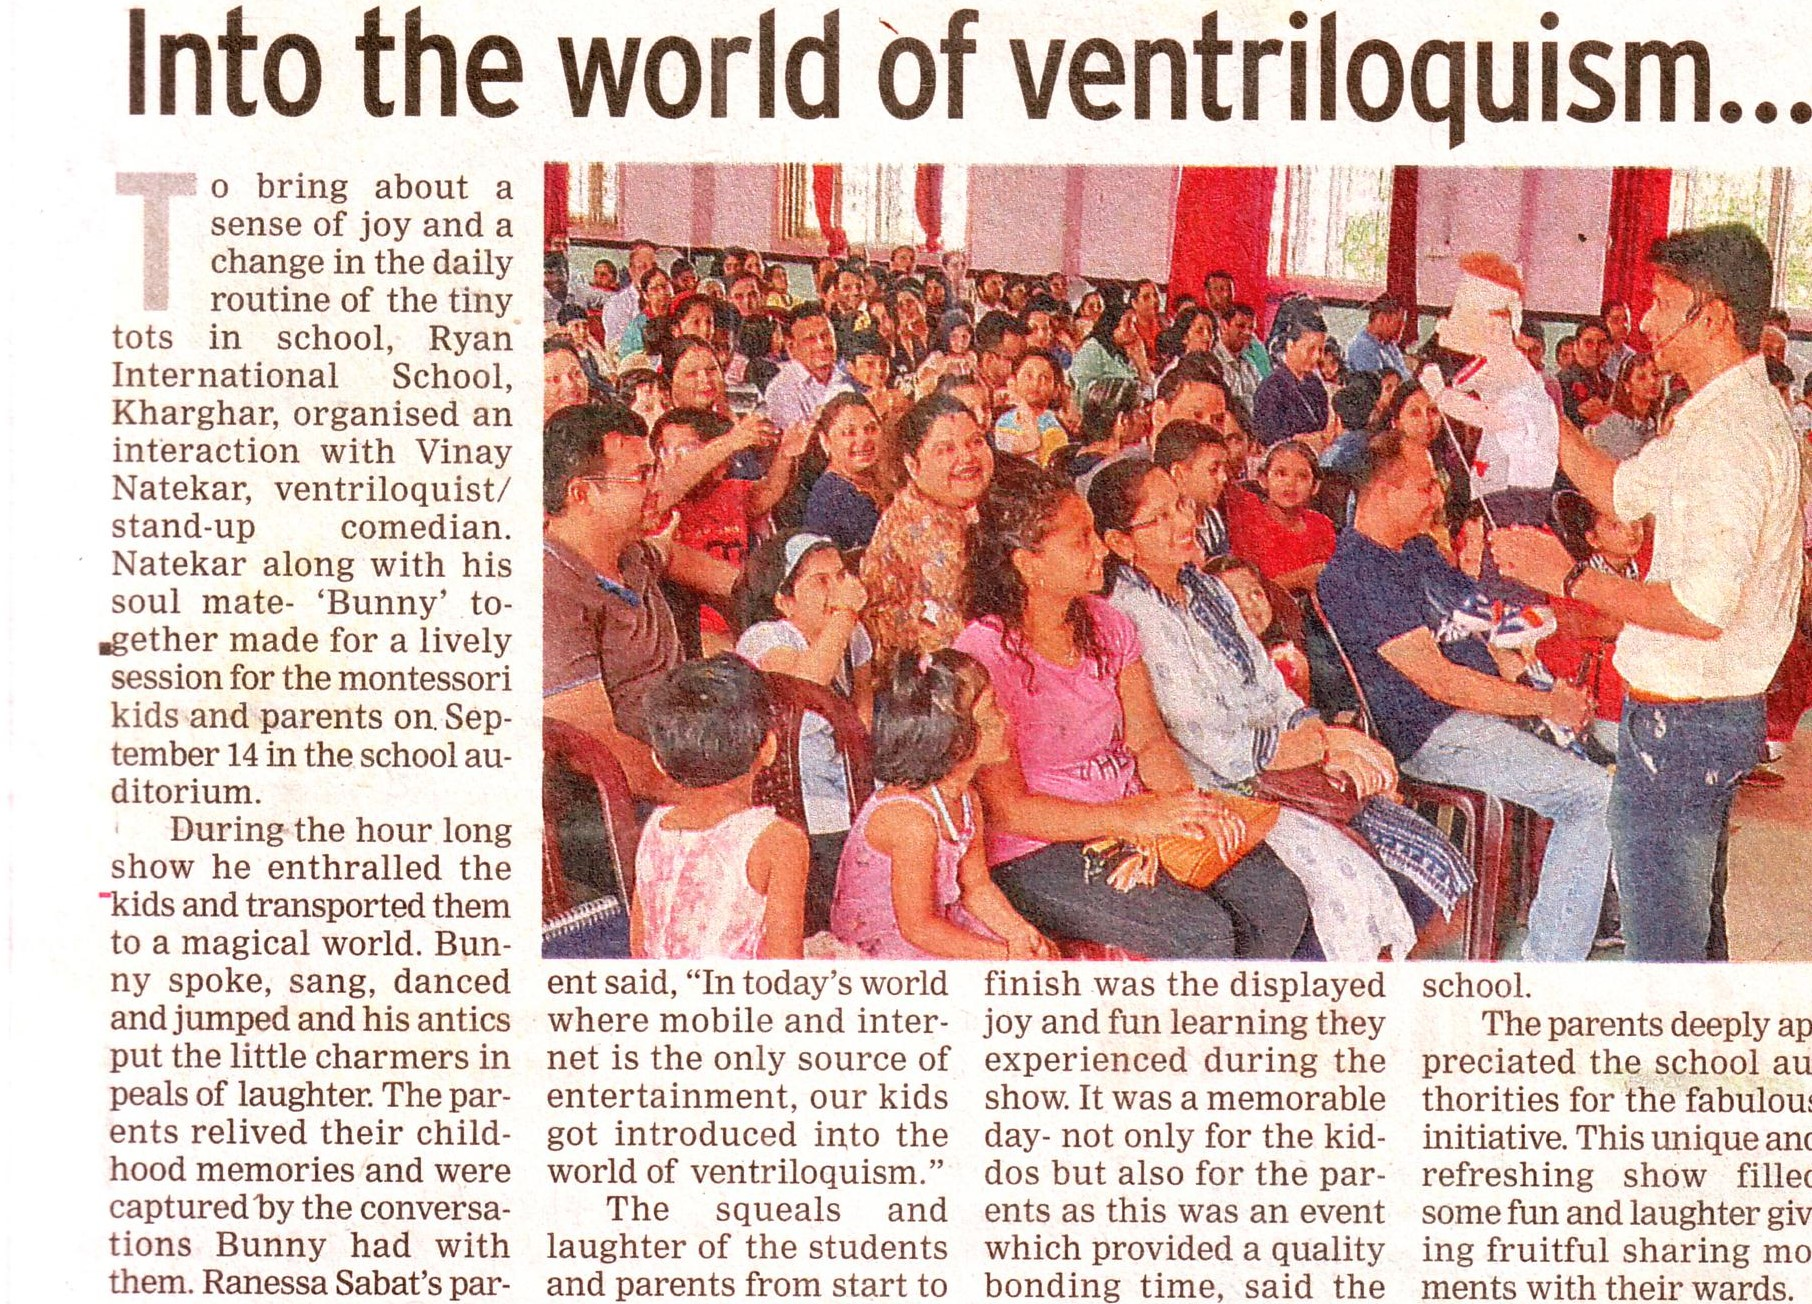 Into the world of ventriloquism was mentioned in Time NIE - Ryan International School, Kharghar - Ryan Group